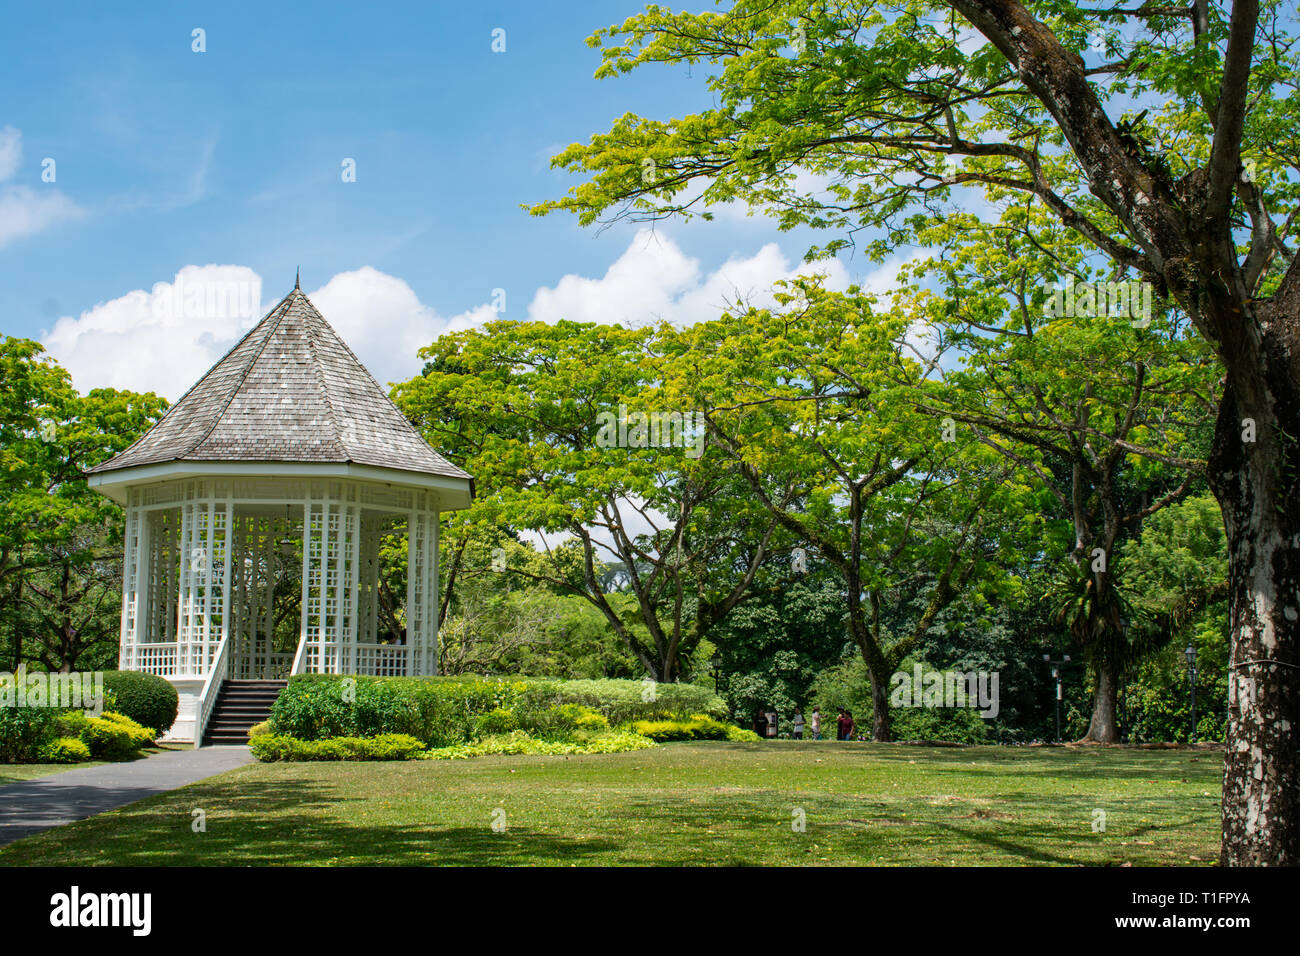 A walk in Botanic Gardens. Good place to take your mind off stress. - Stock Image